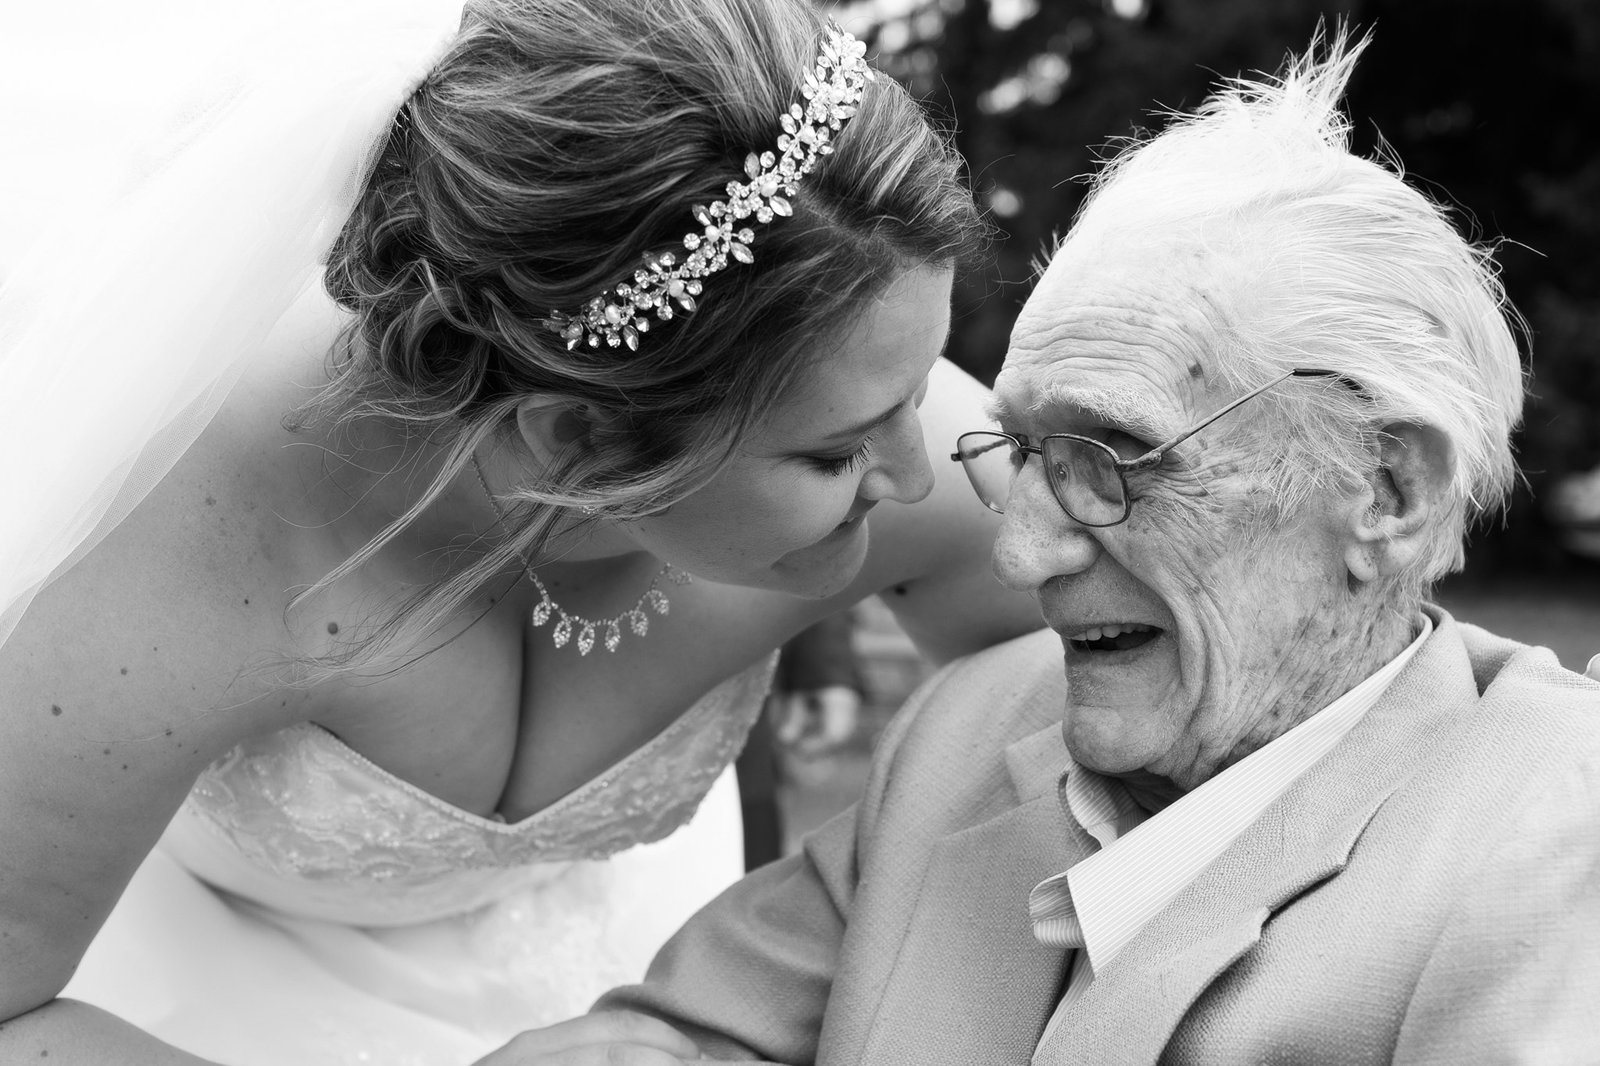 summer kellogg weddings;generations;bride;bride and groom;ohio weddings;